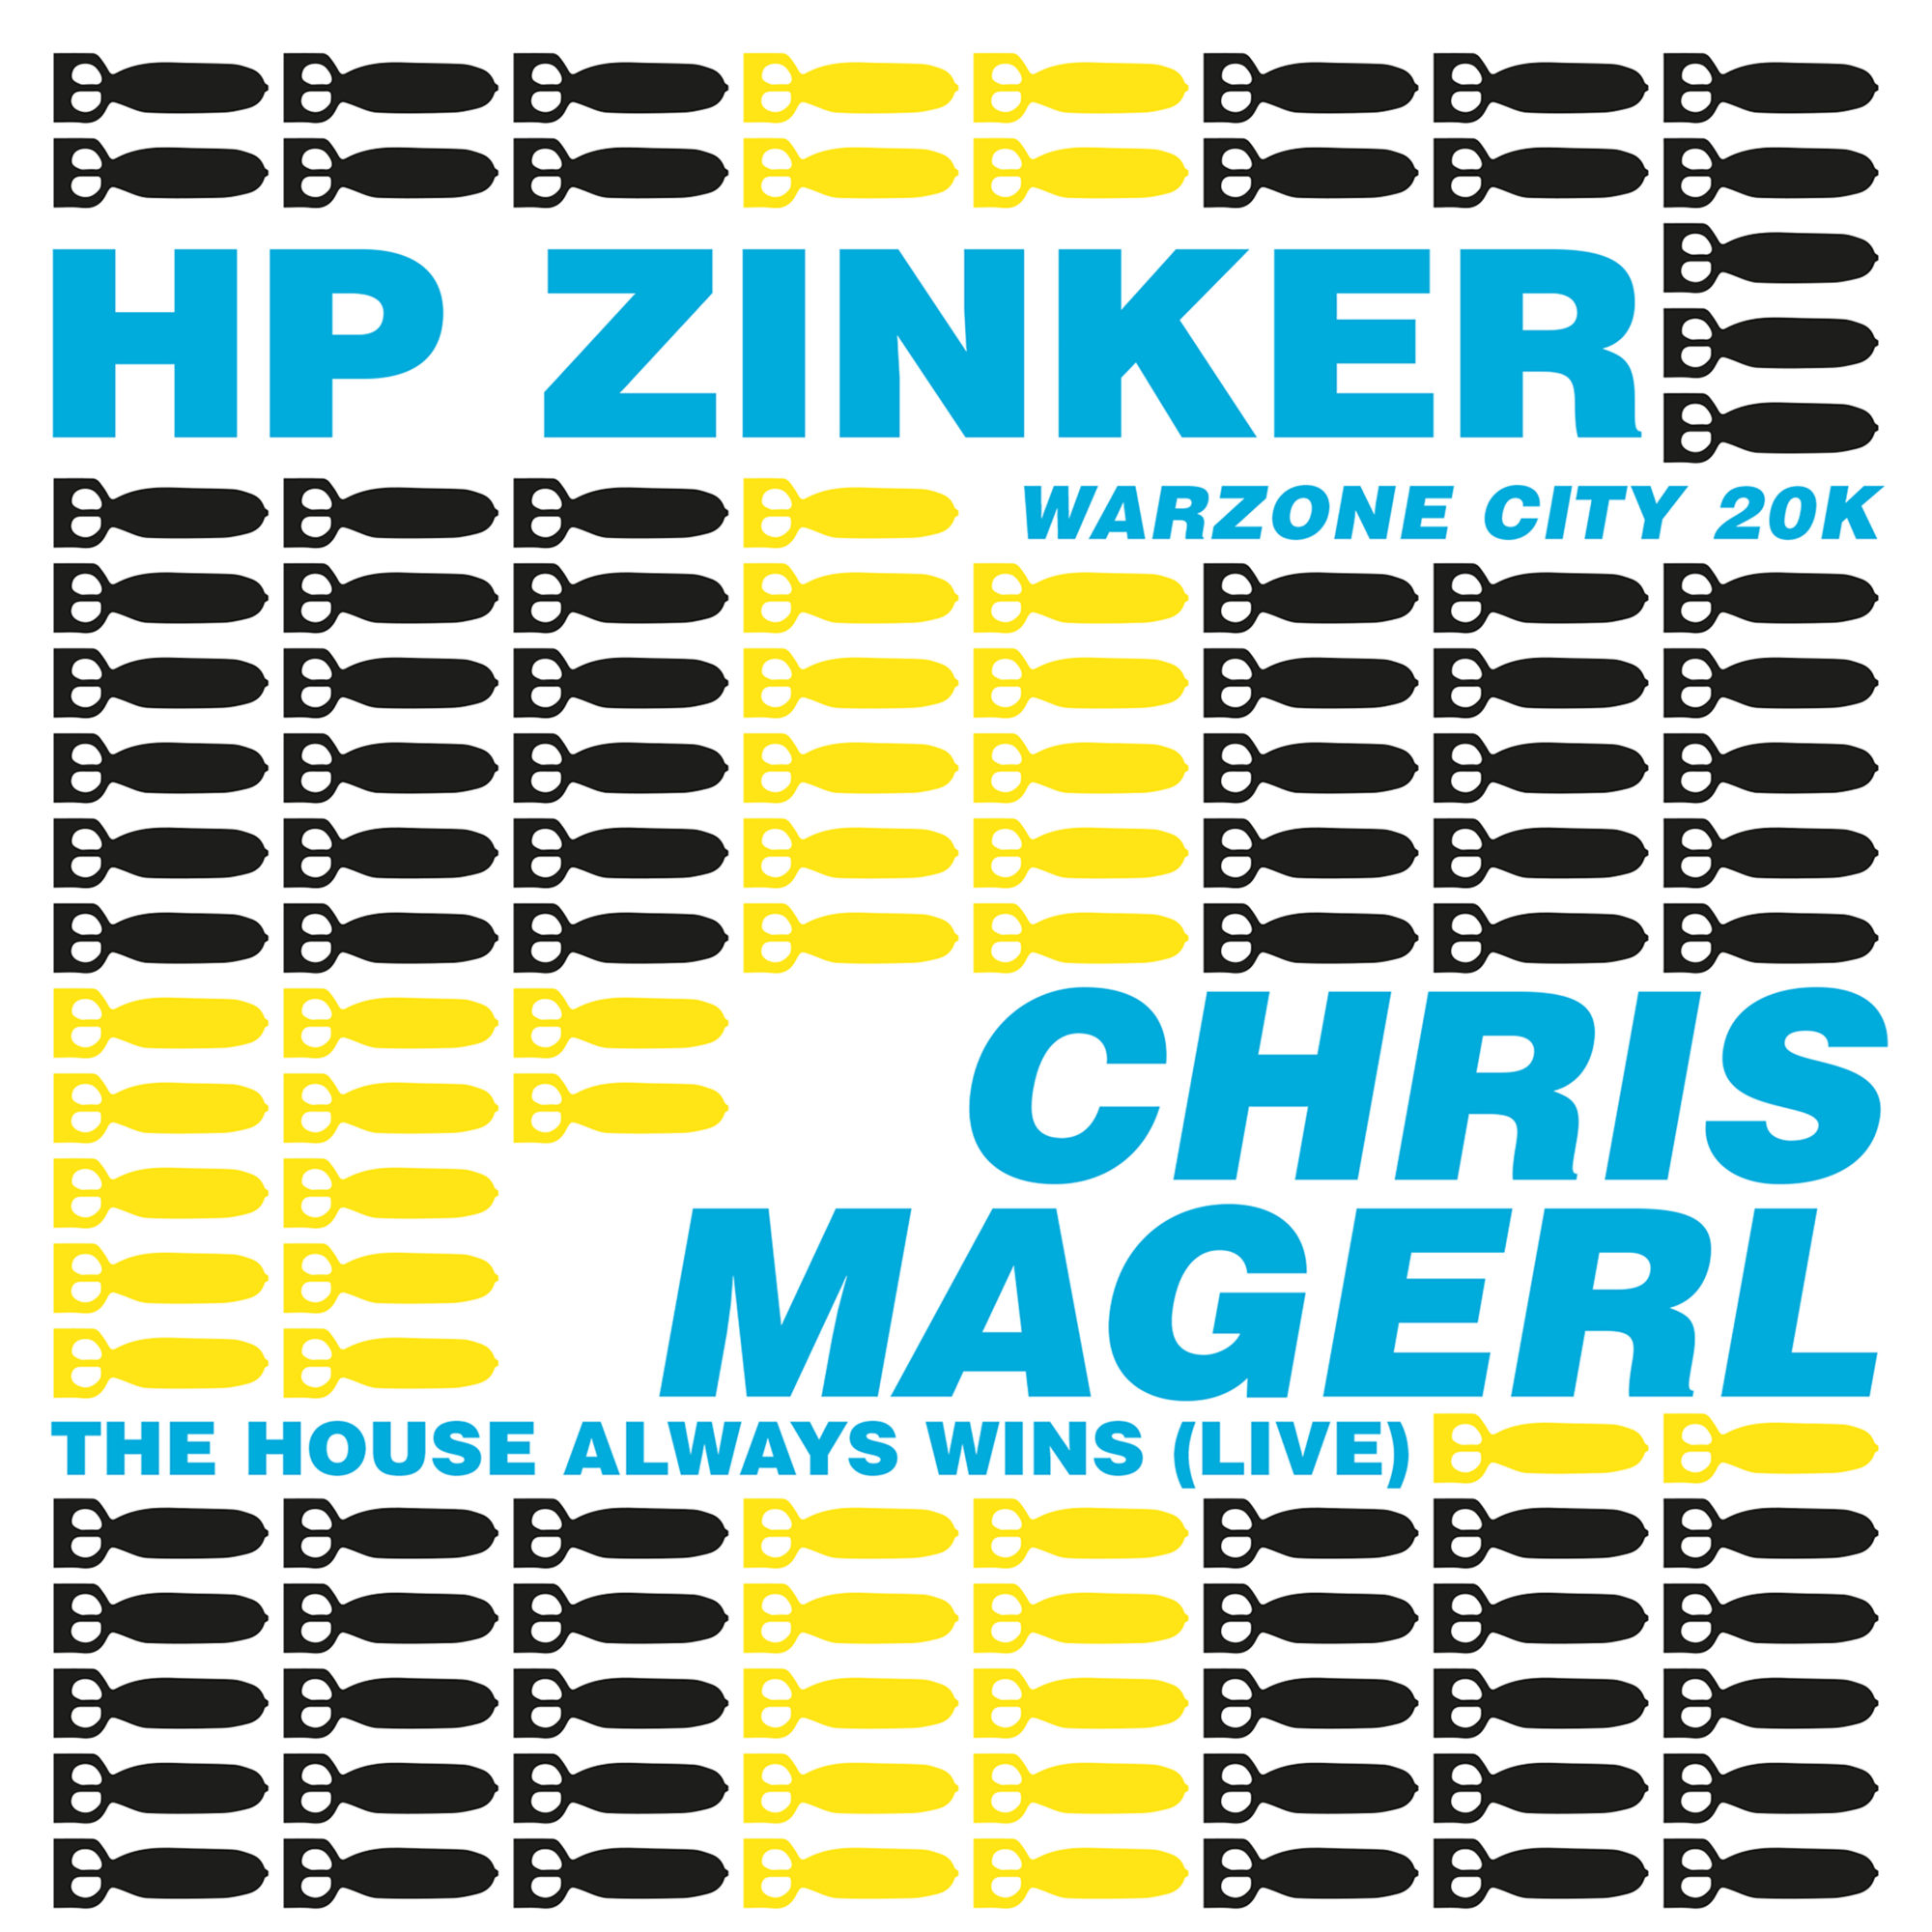 HP Zinker Band Chris Magerl Split Cover